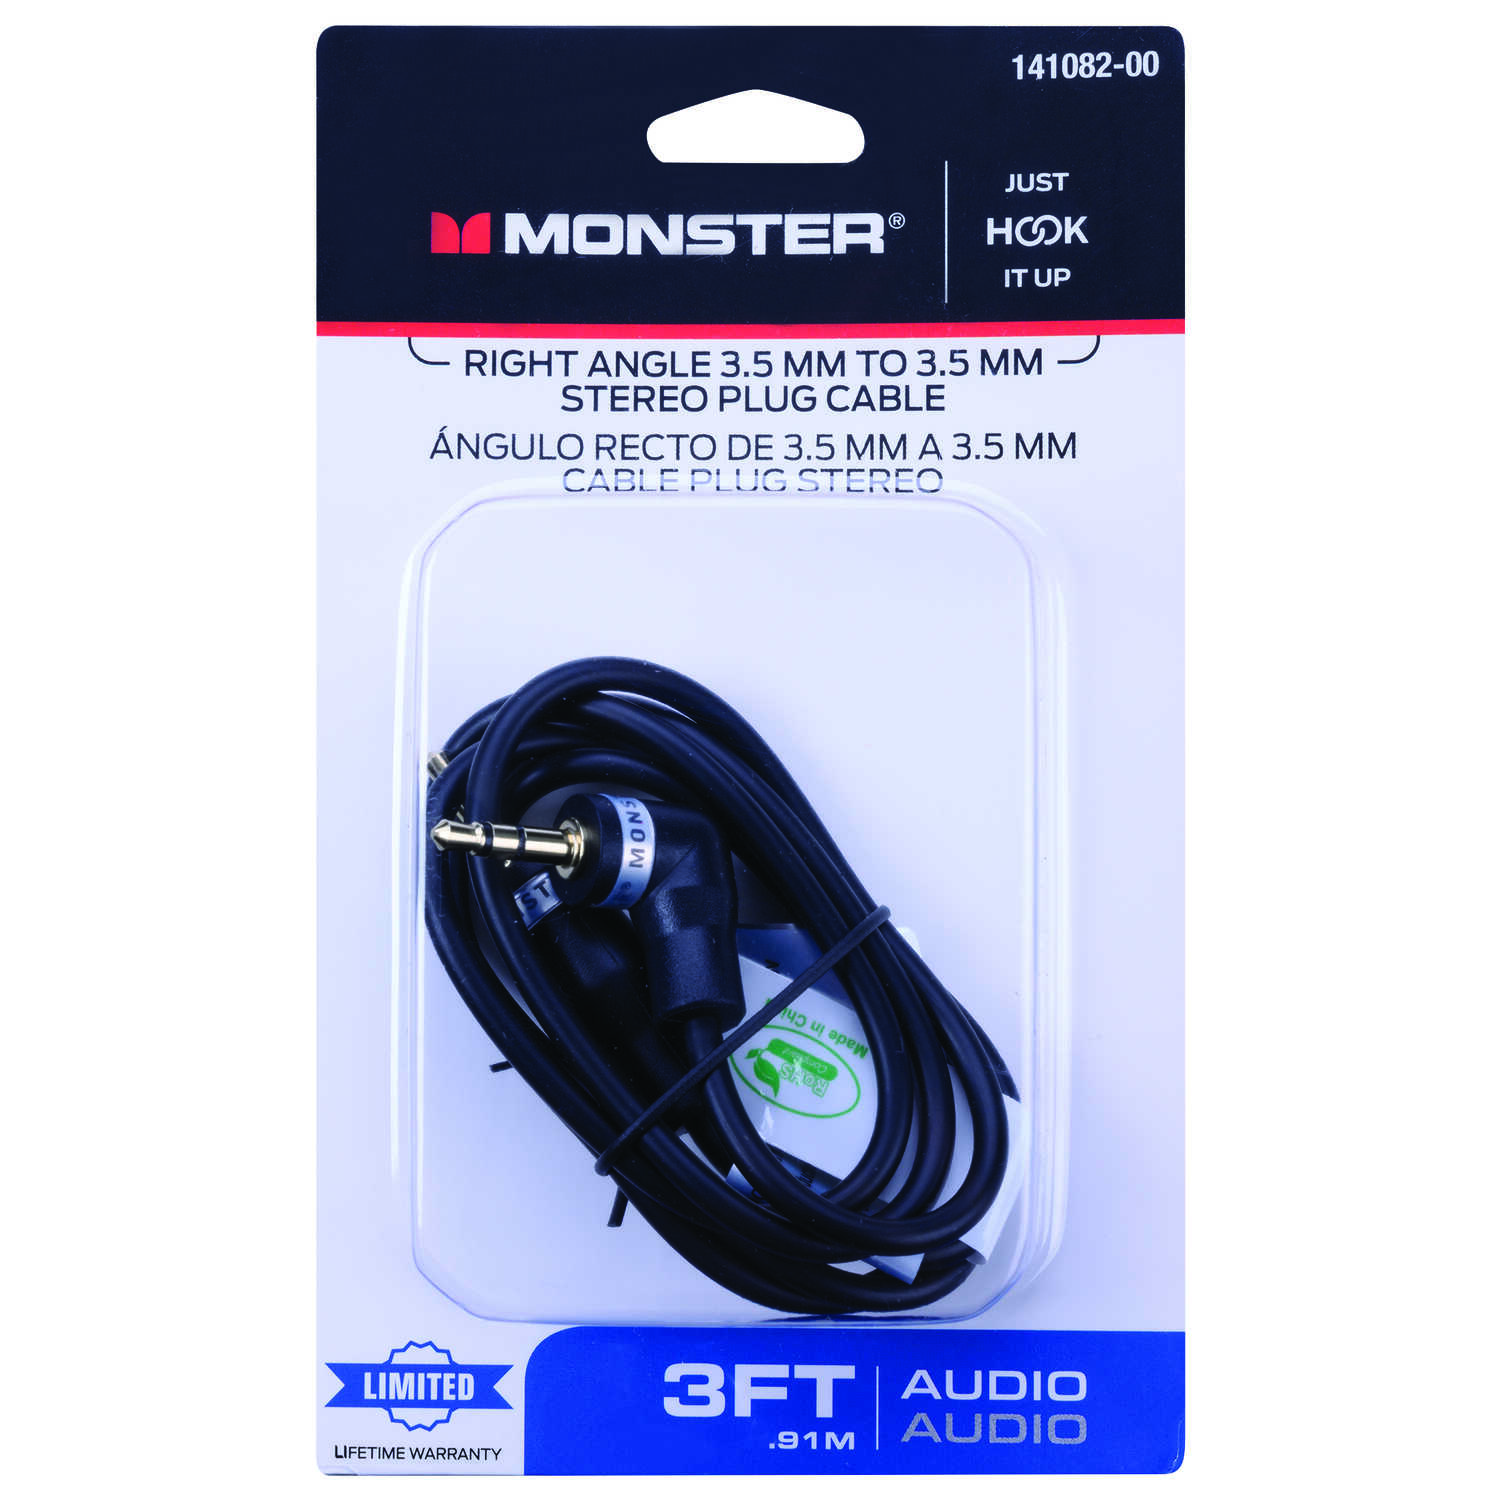 Monster Cable  Just Hook It Up  3 ft. L Stereo Plug Cable  3.5 mm